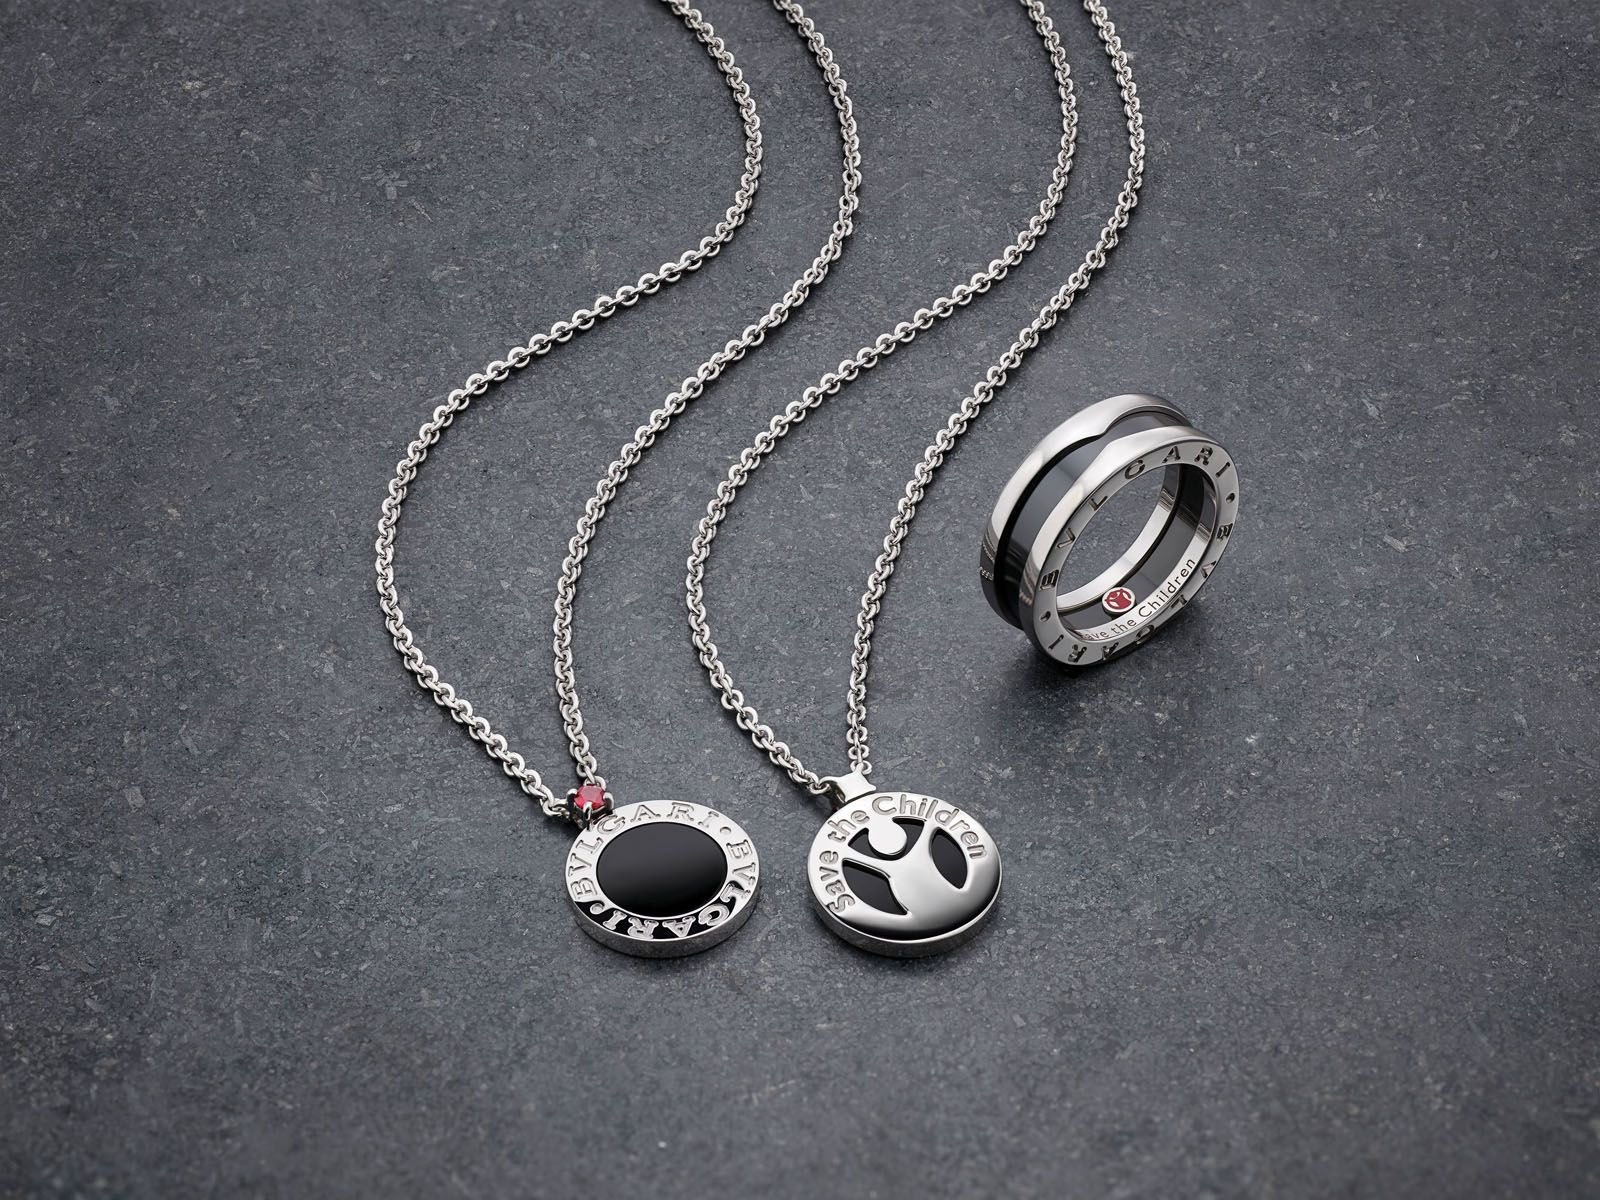 Besides the necklace, the charity collection also includes a B.zero1 ring, bracelet and pendant